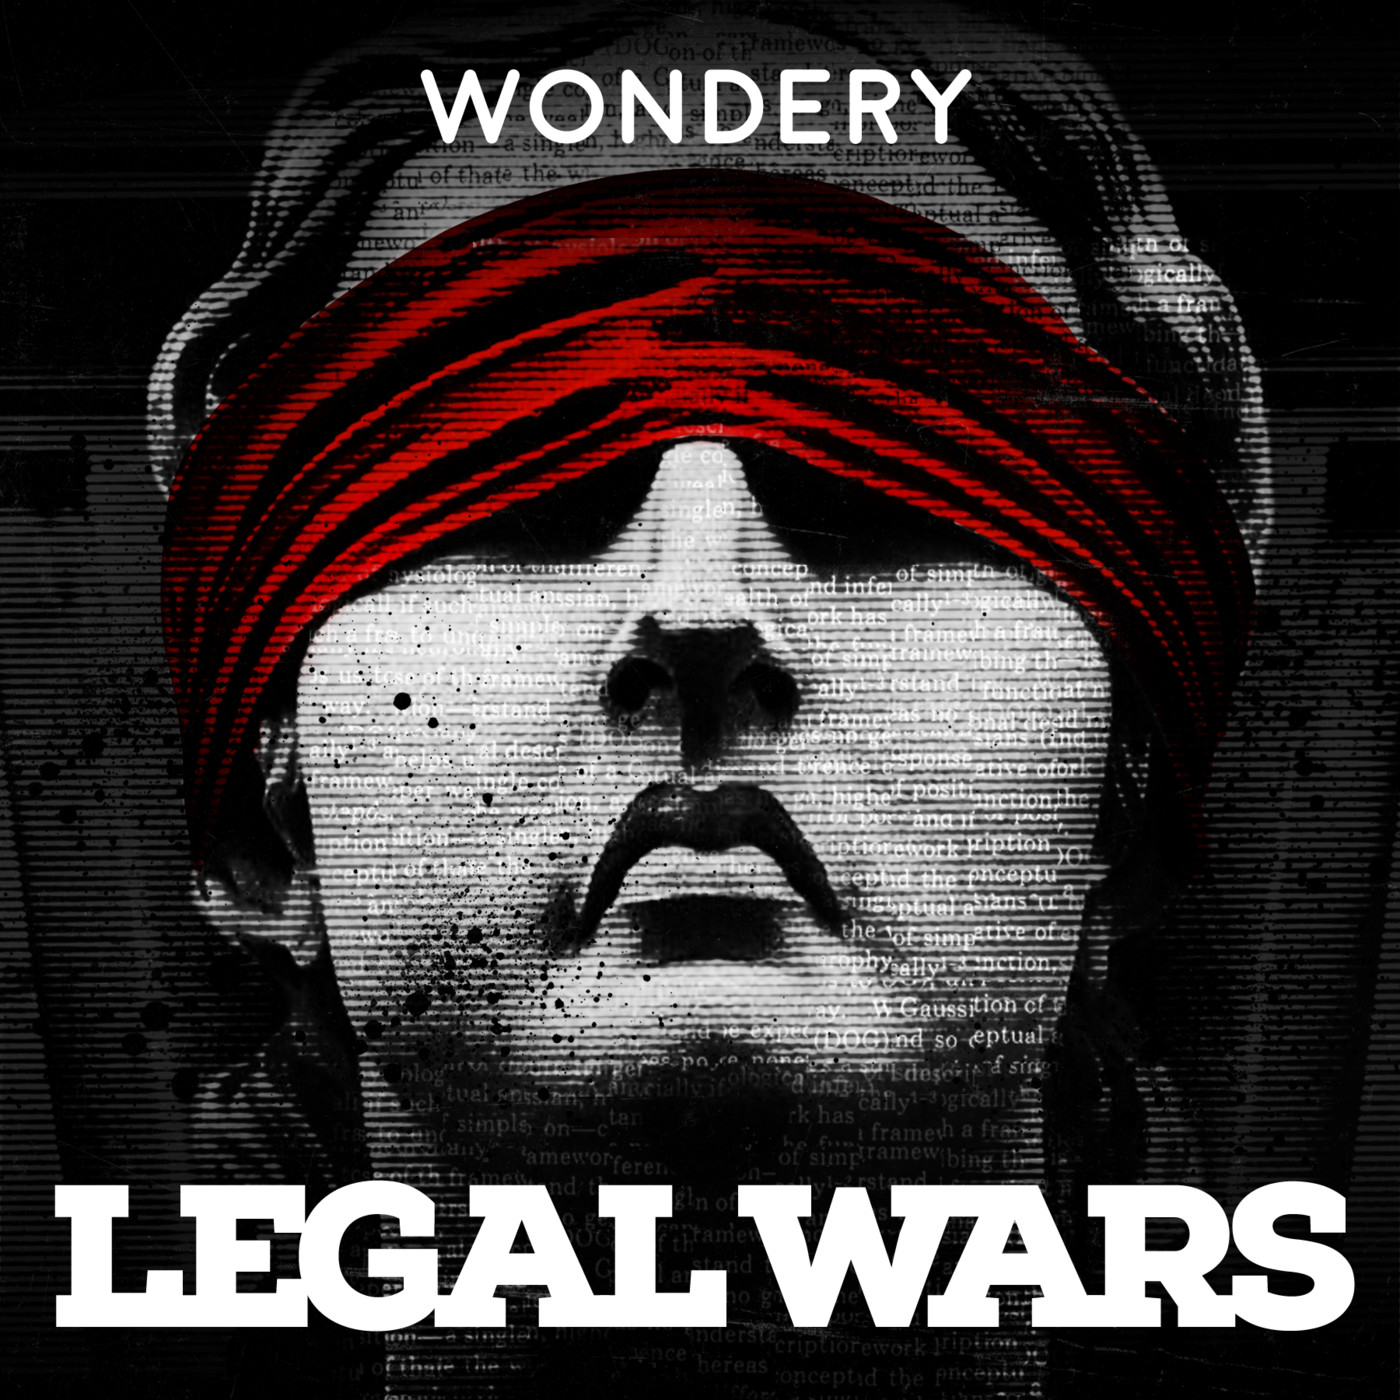 Introducing Legal Wars